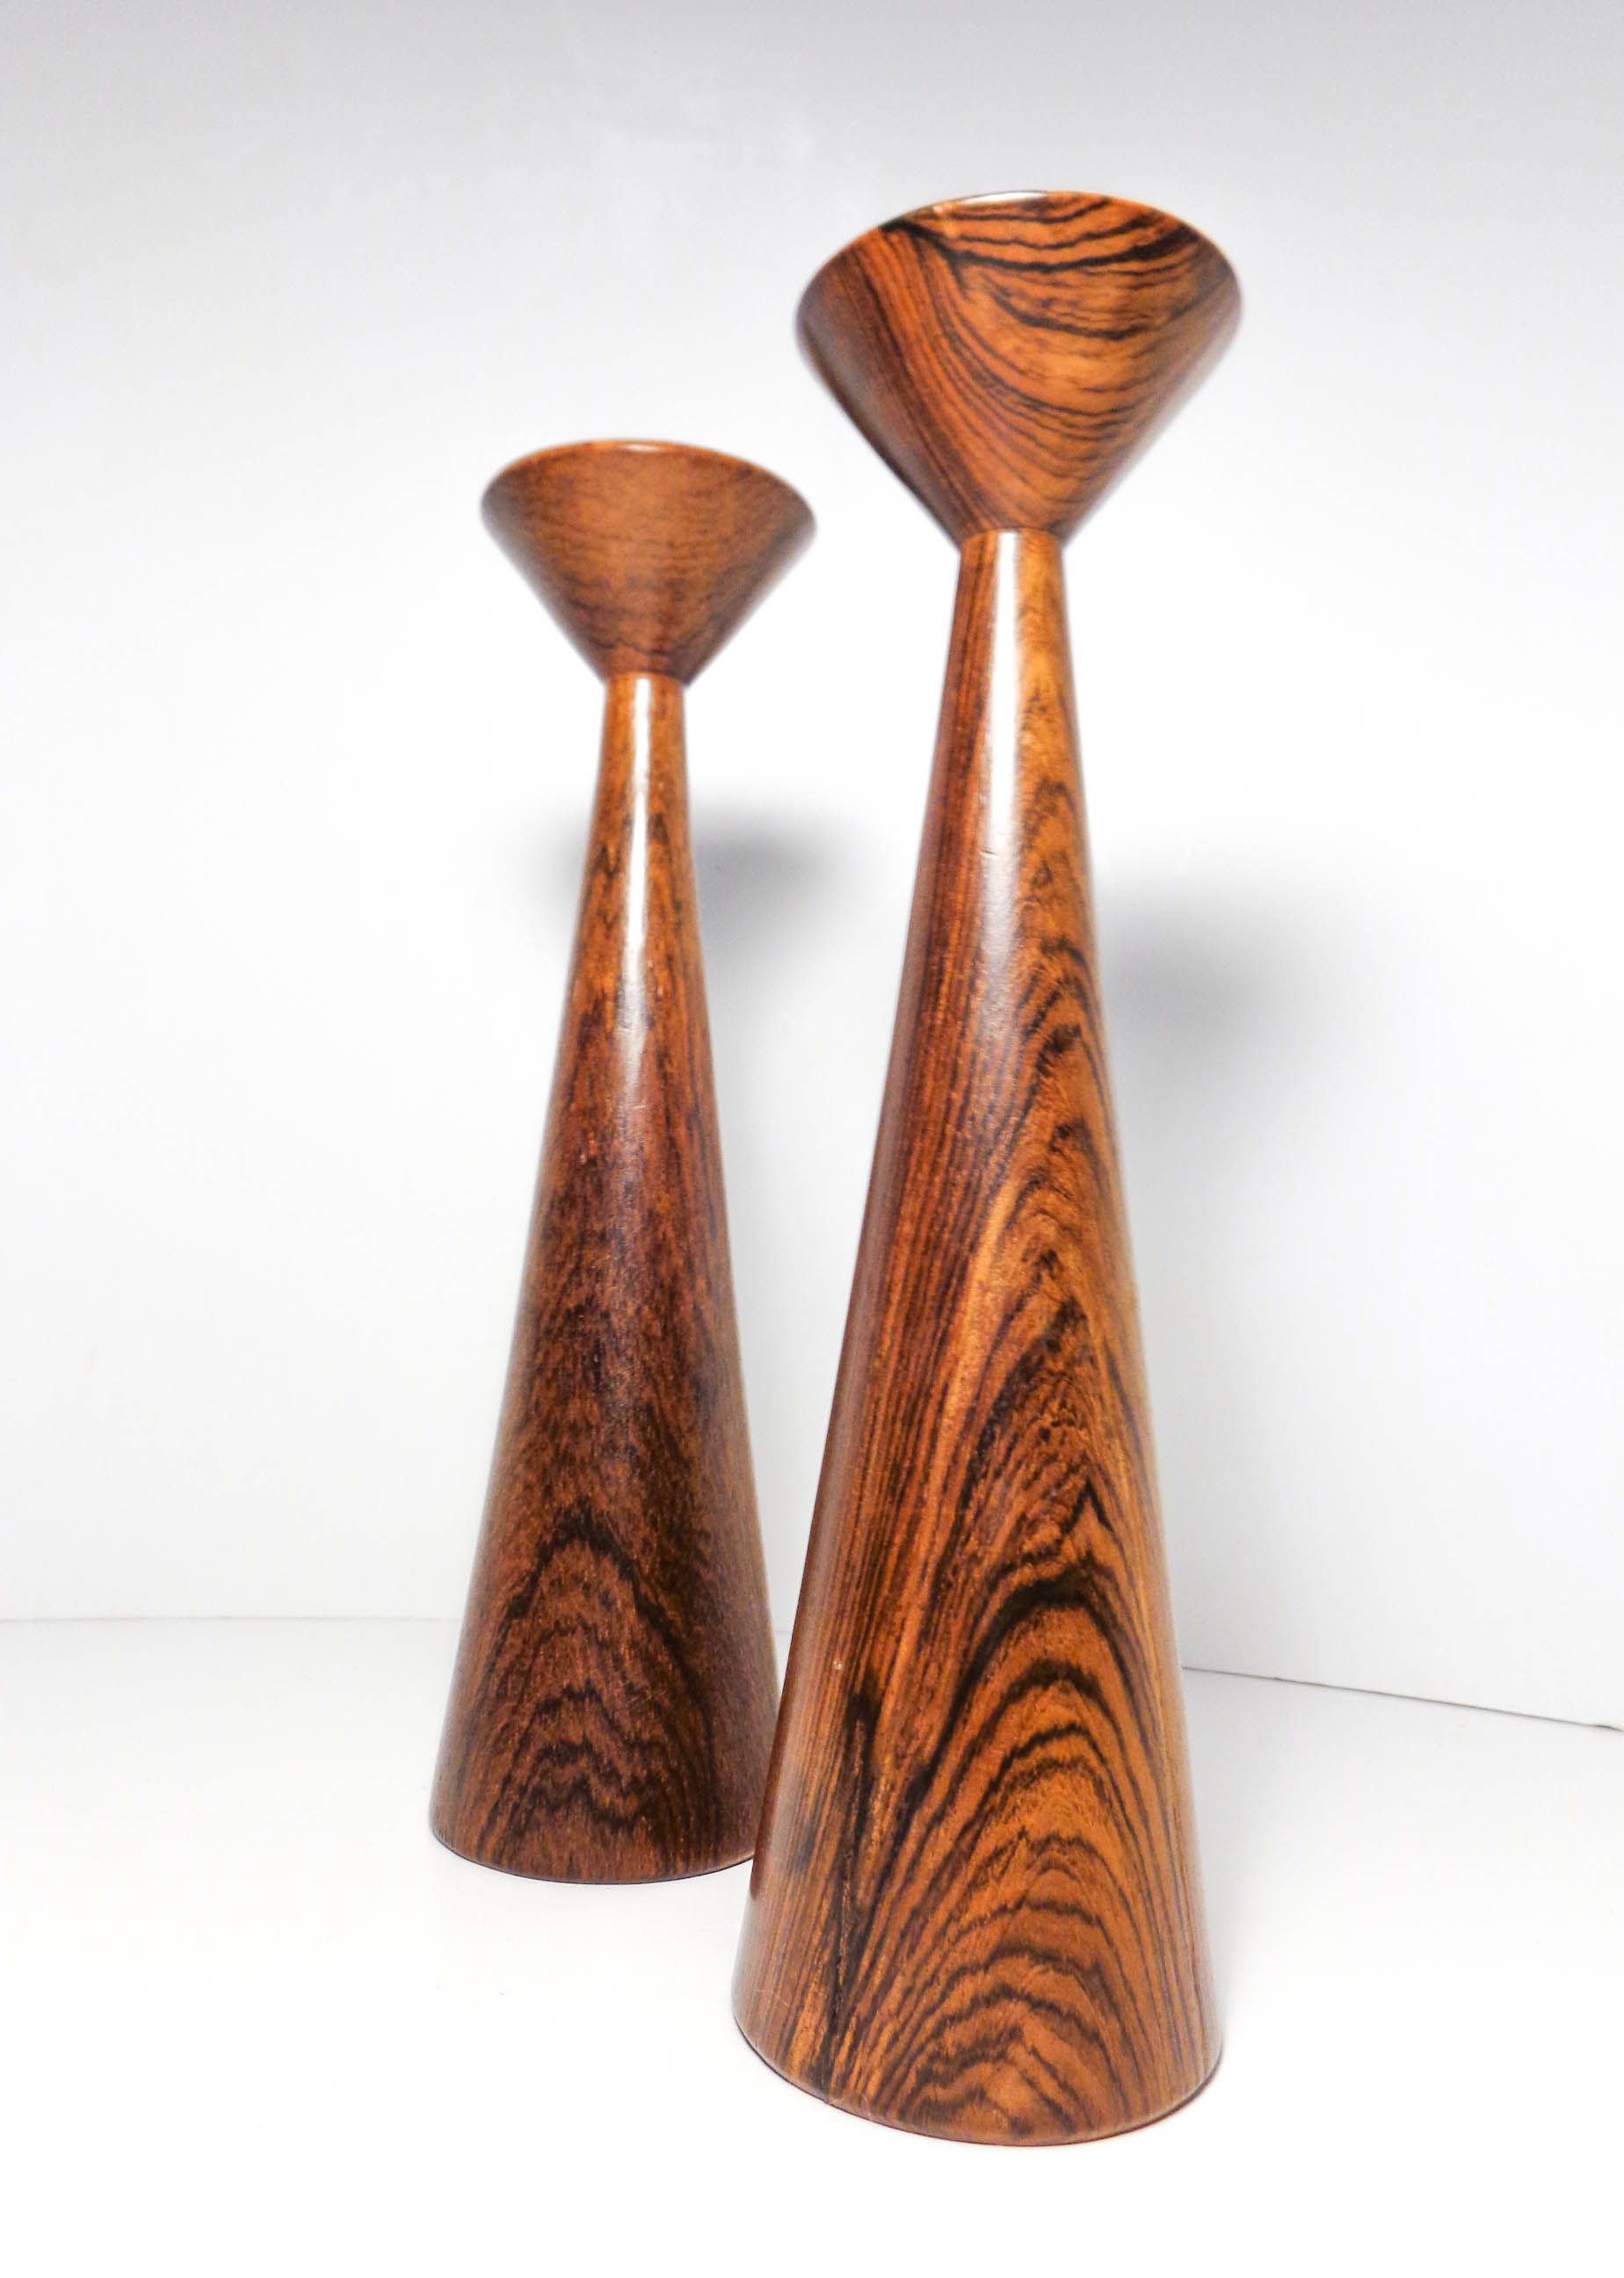 Brazilian Rosewood Candlesticks With Original Stickers On The Bottom (Casa